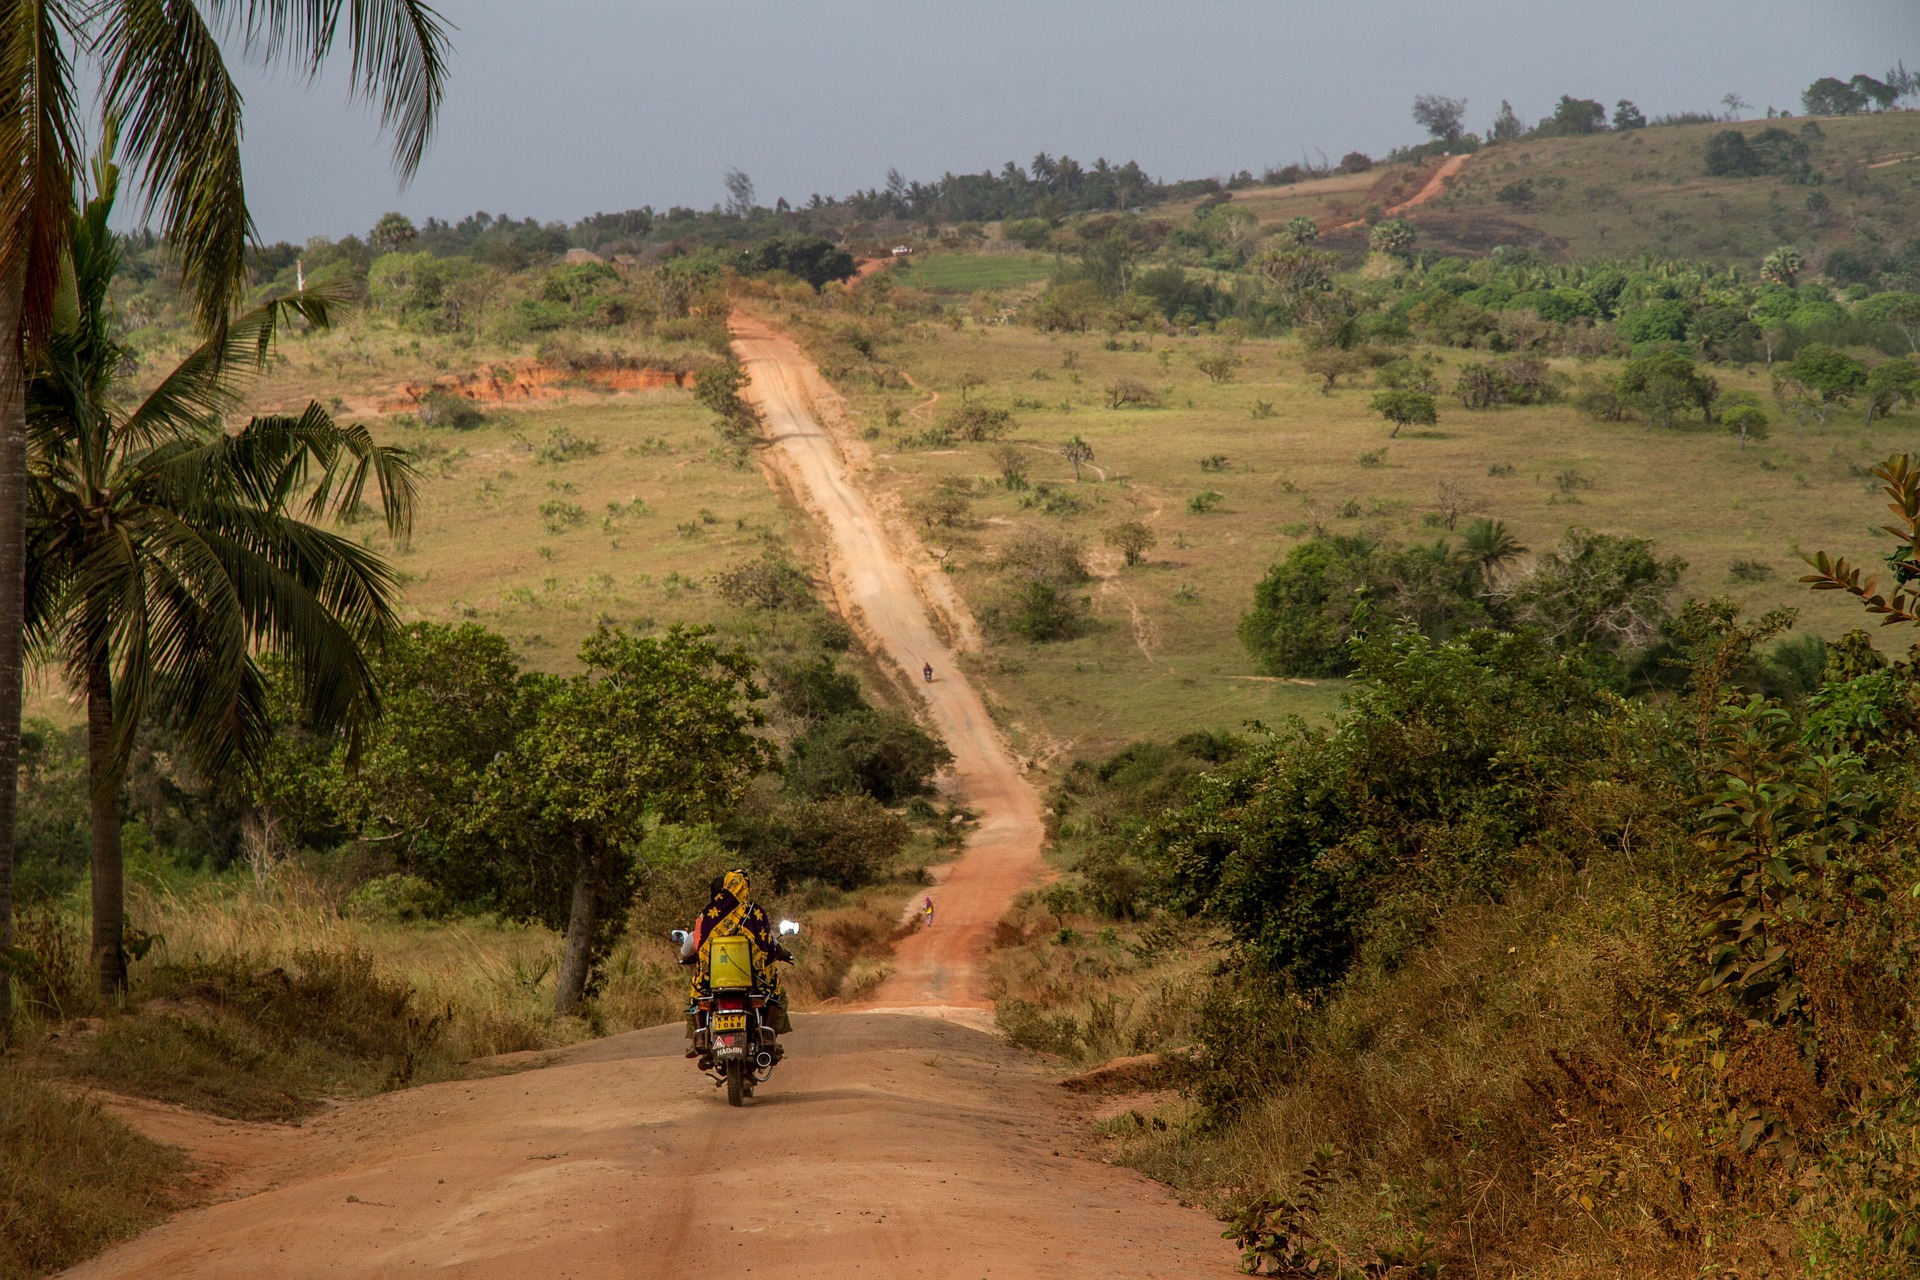 Boda Boda Through Landscape.jpg